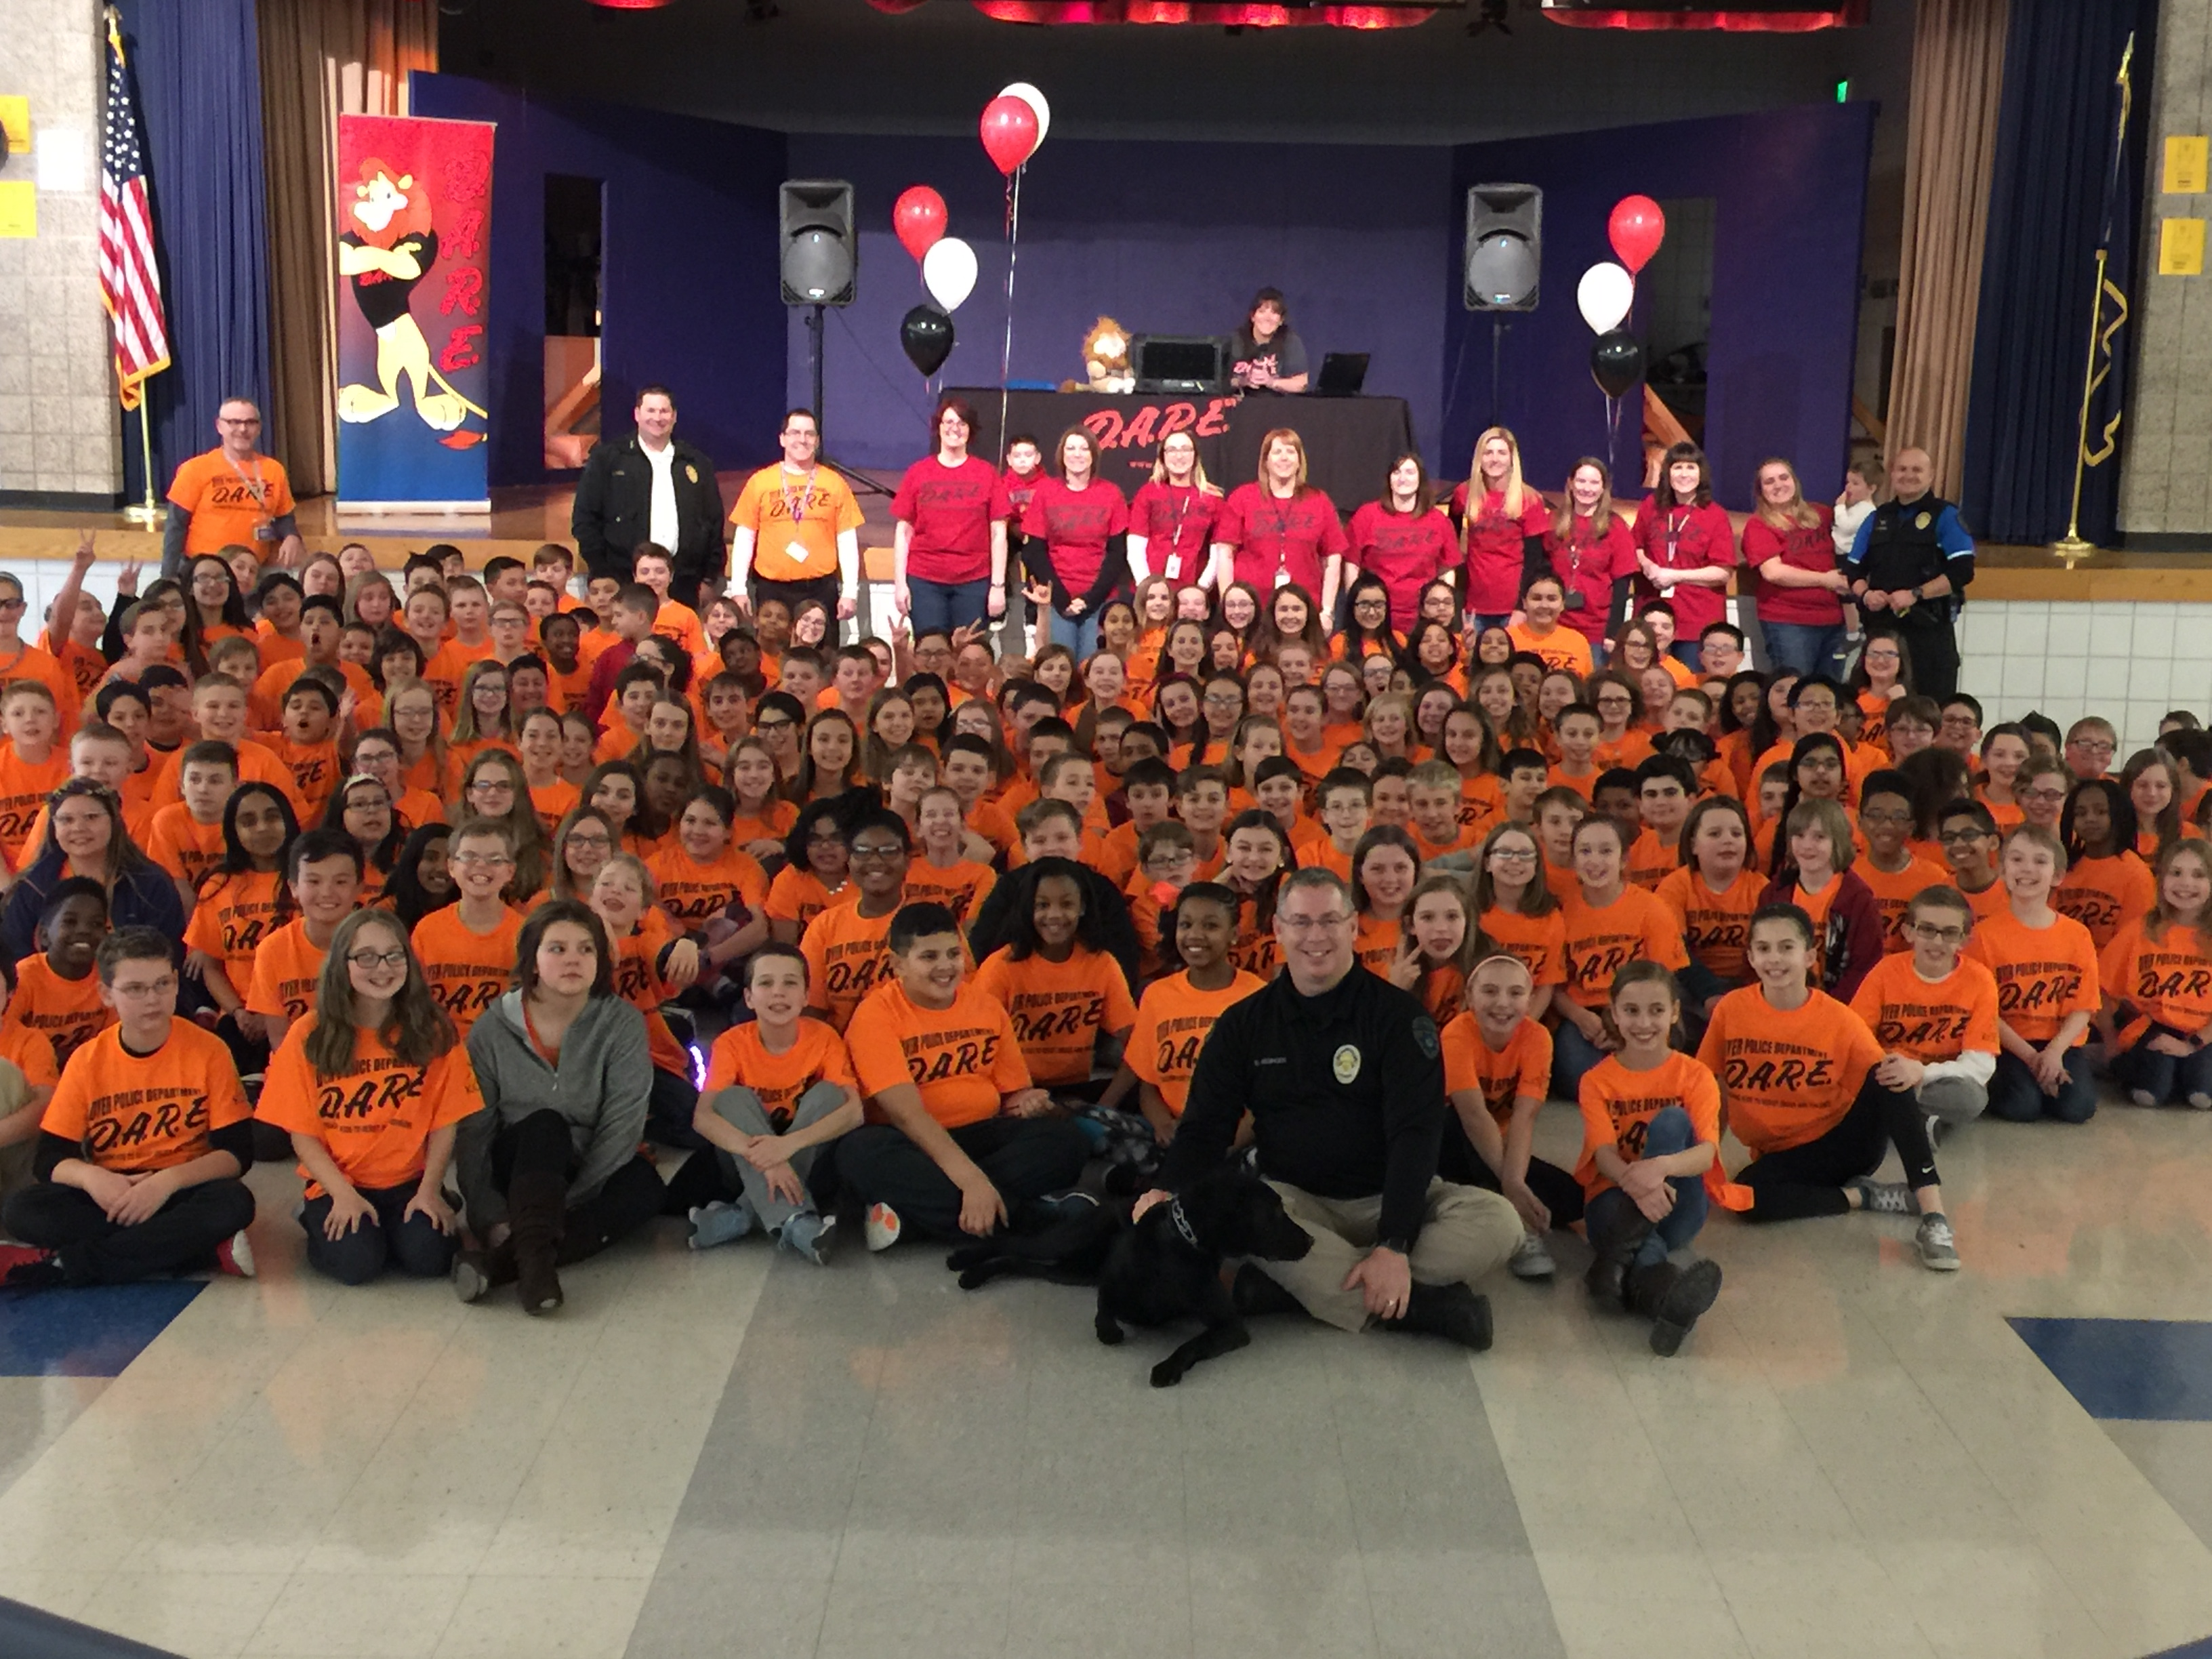 Officer Kissinger from Dyer Police Department in front of students during a DARE assembly at Kahler Middle School.